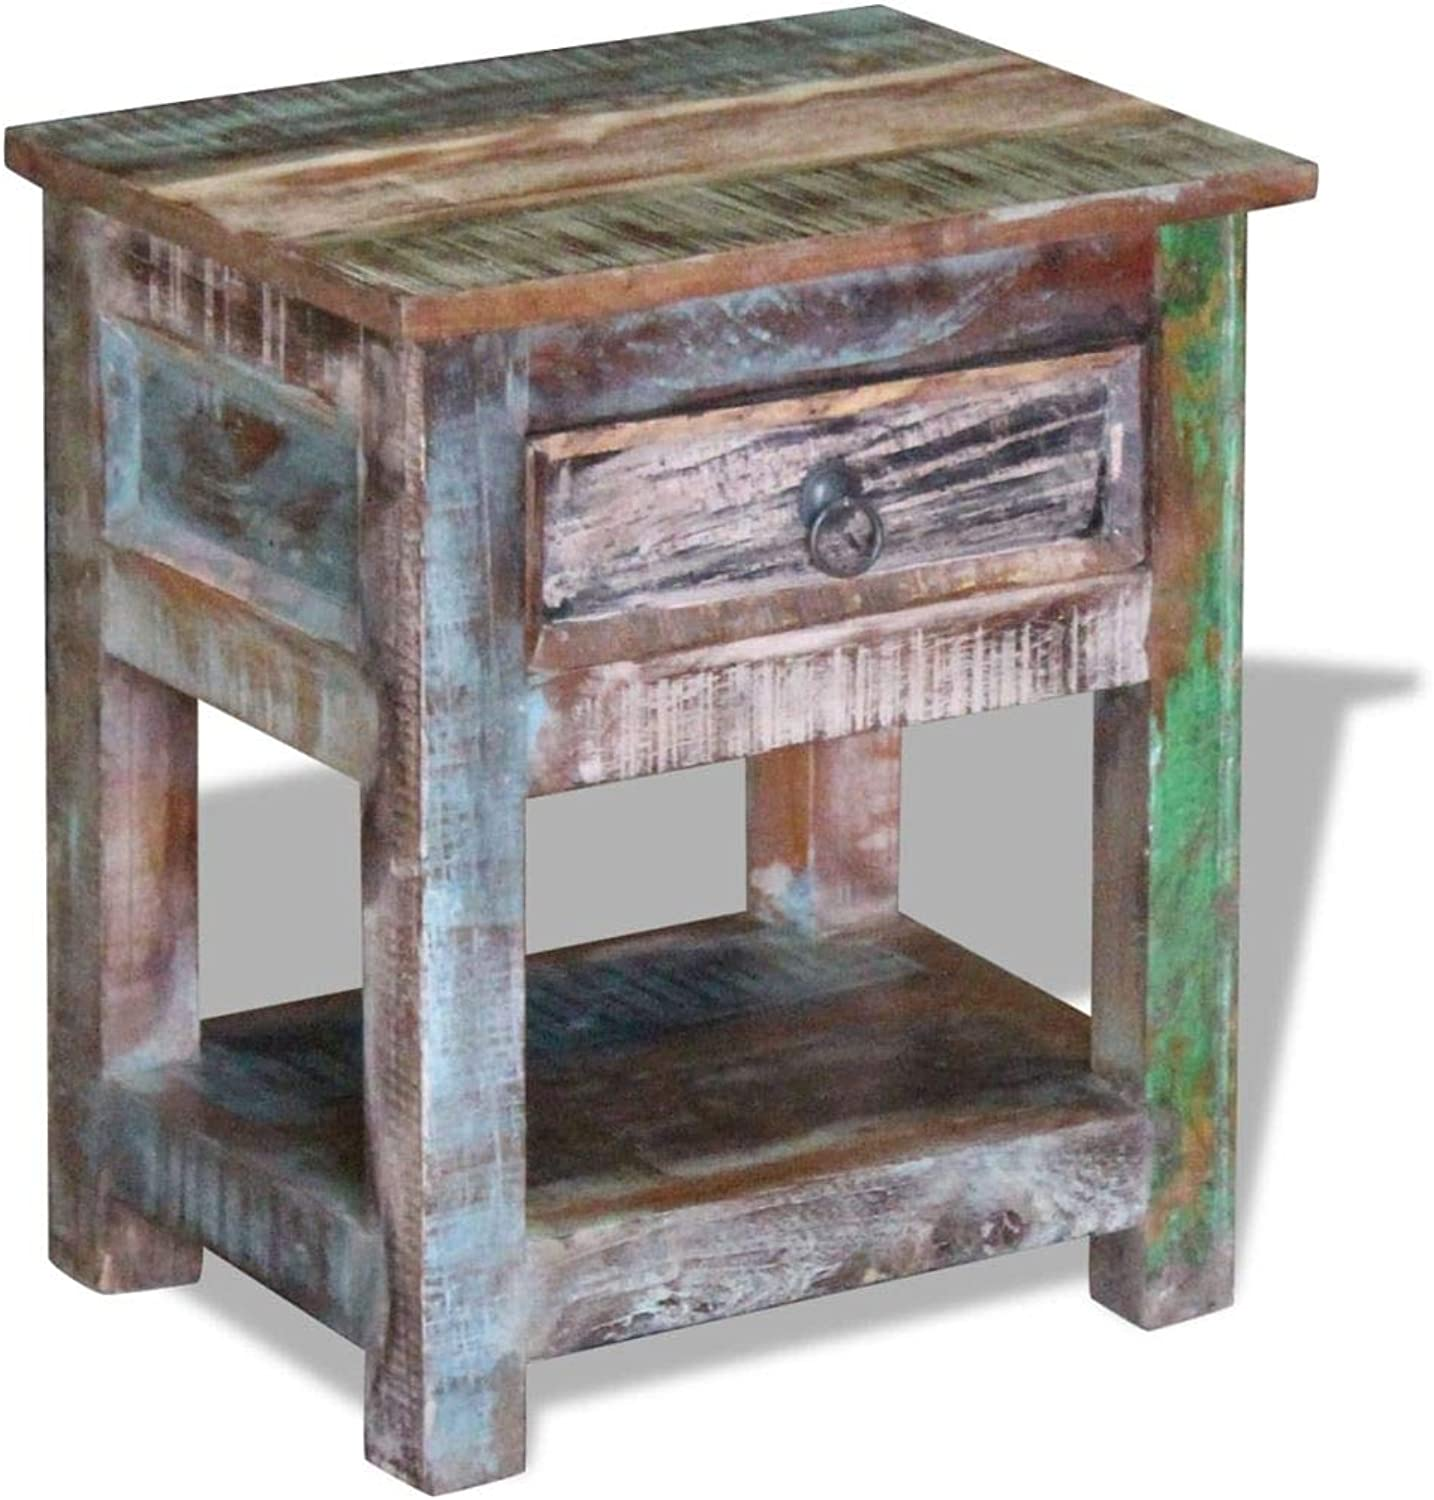 Festnight Side Table with 1 Drawer Solid Reclaimed Wood 43 x 33 x 51 cm